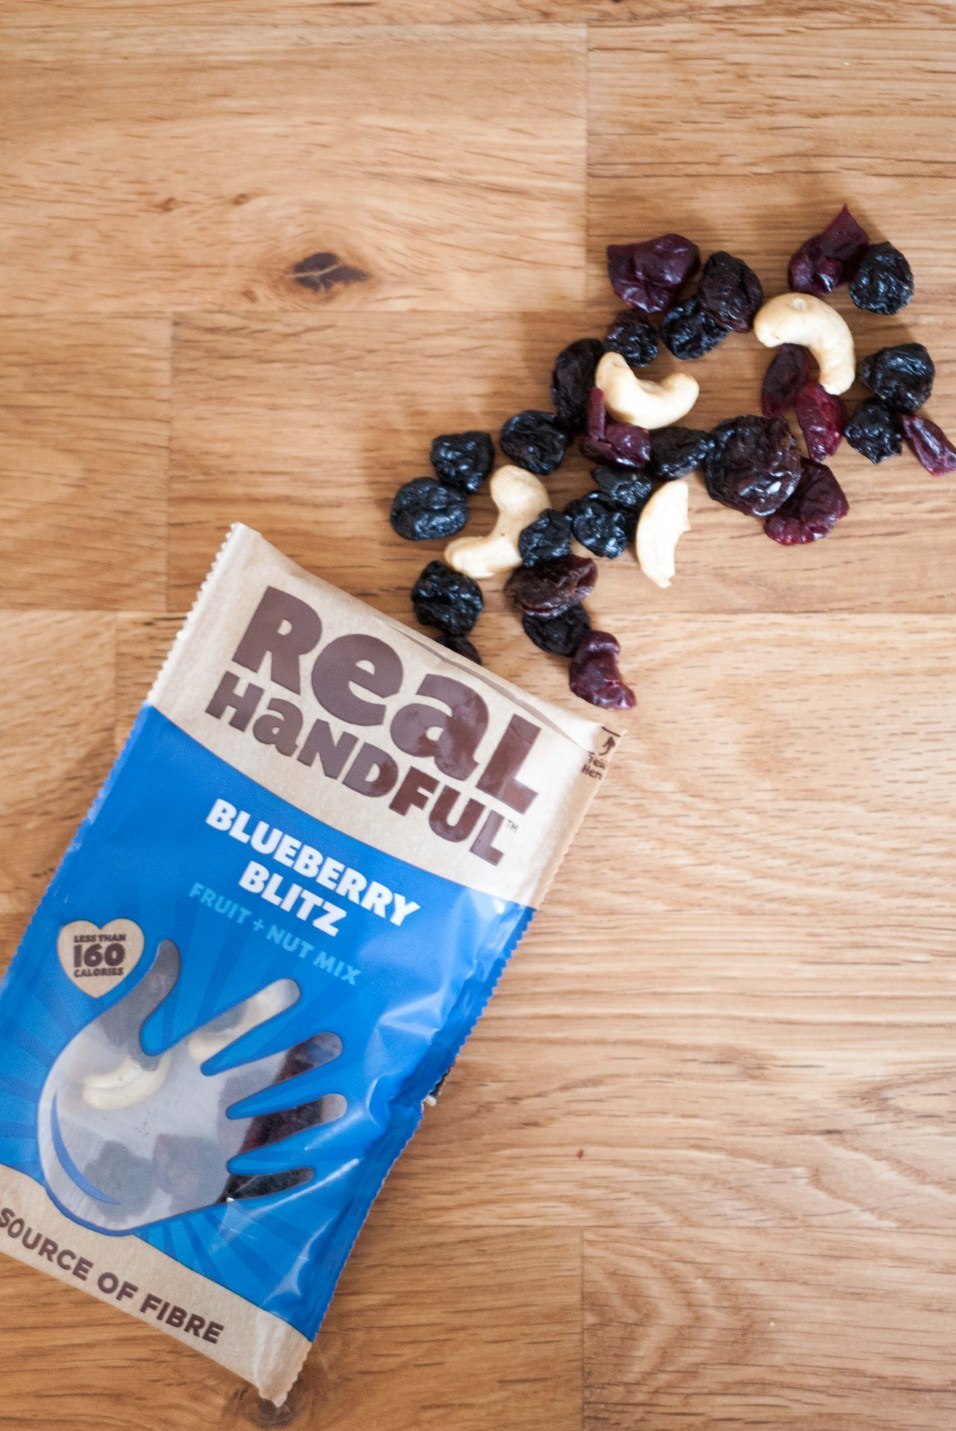 Real Handful's Blueberry Blitz